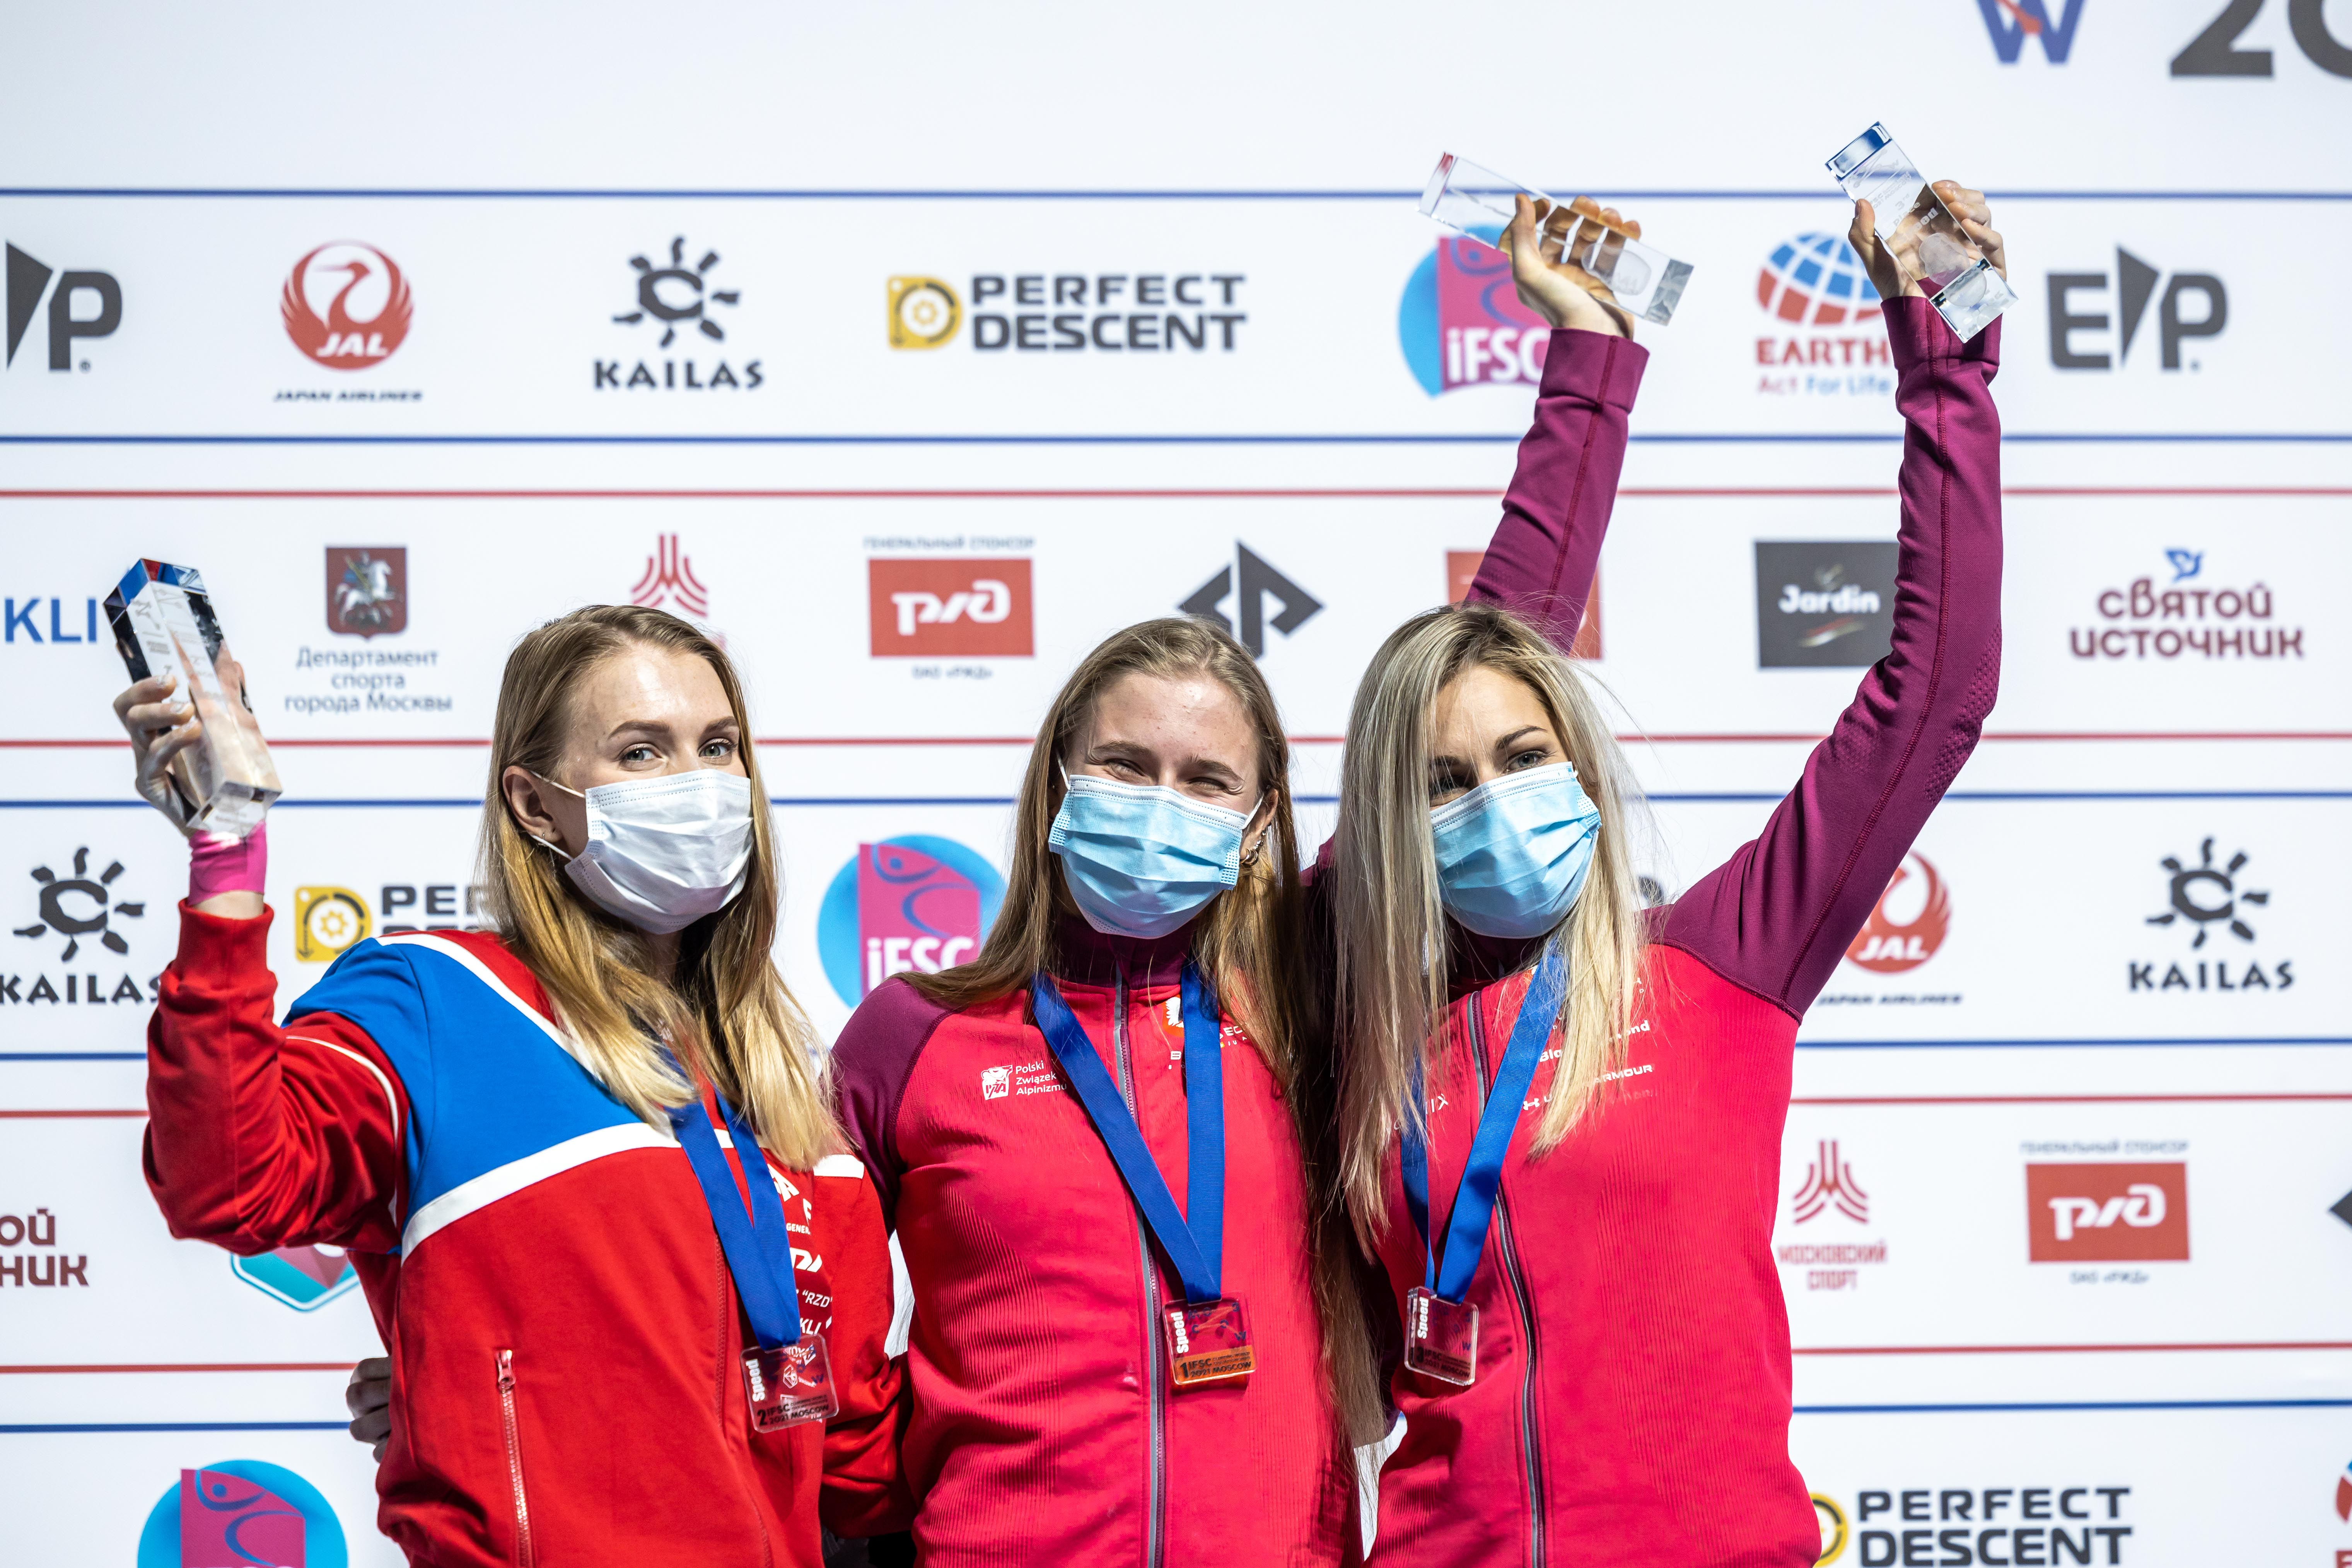 210916 IFSC News Danyil Boldyrev and Natalia Kalucka are the fastest climbers in the world 2